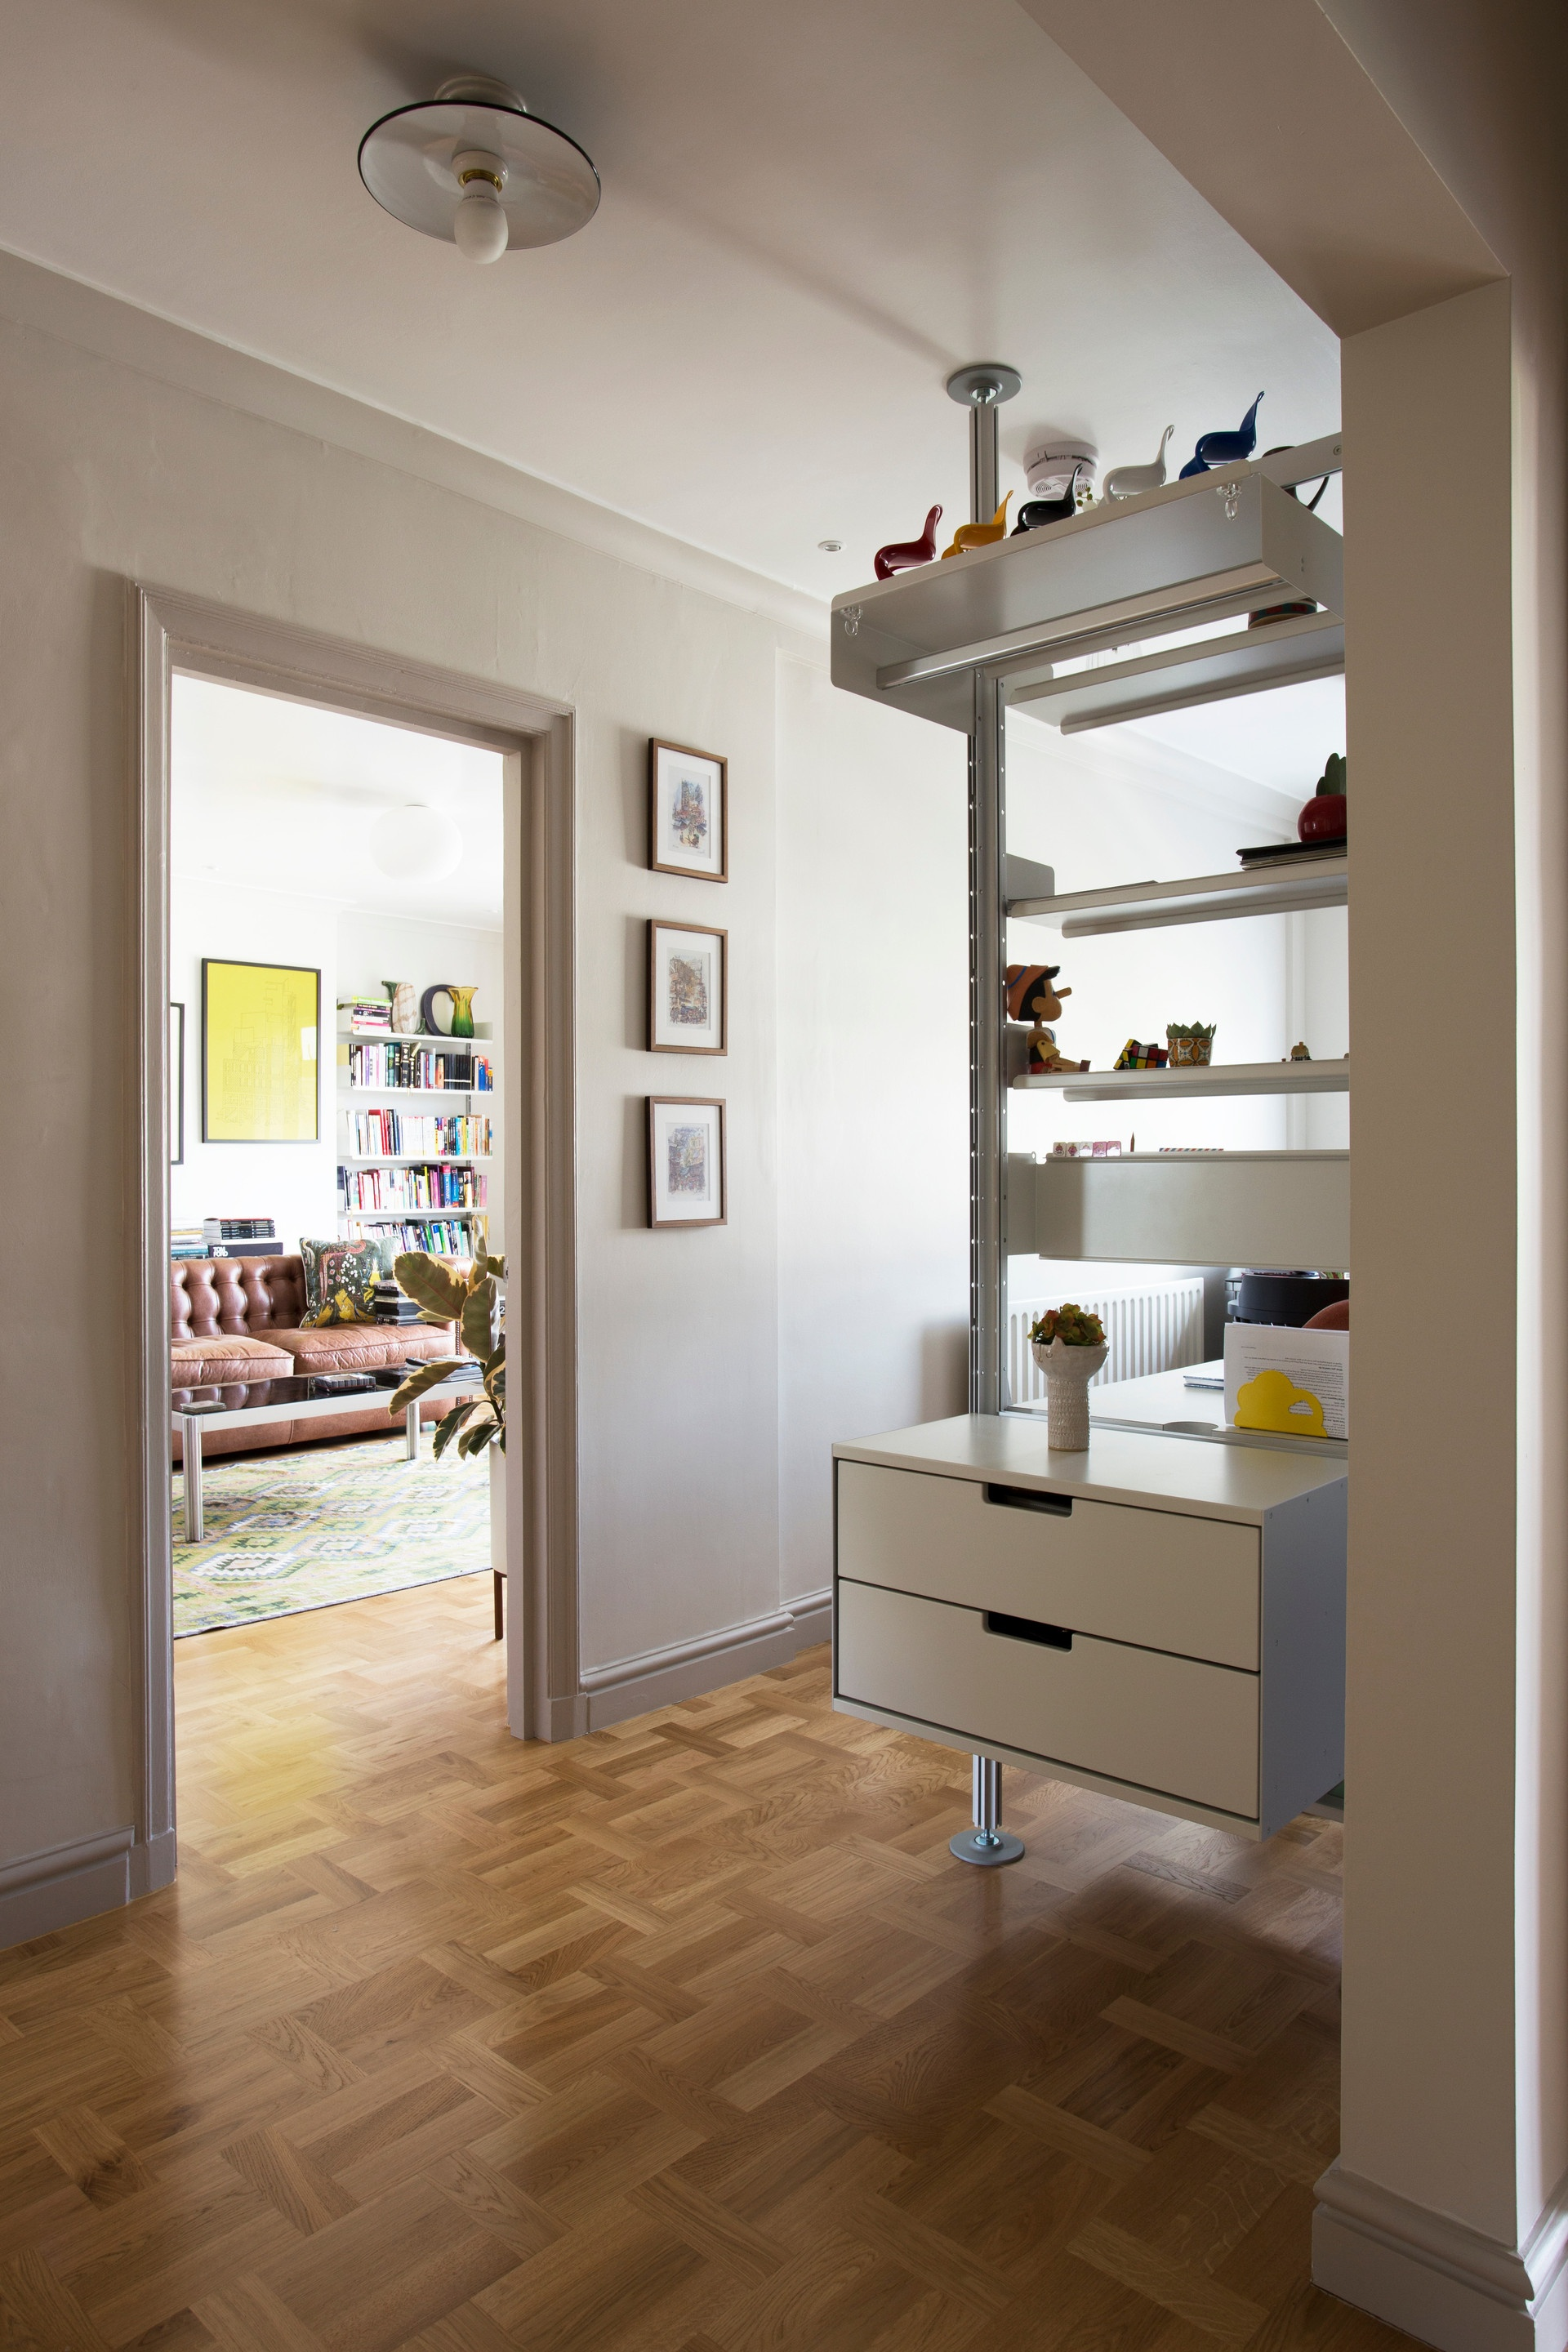 If there's no wall space in your hallway, the system may be compressed between floor and ceiling